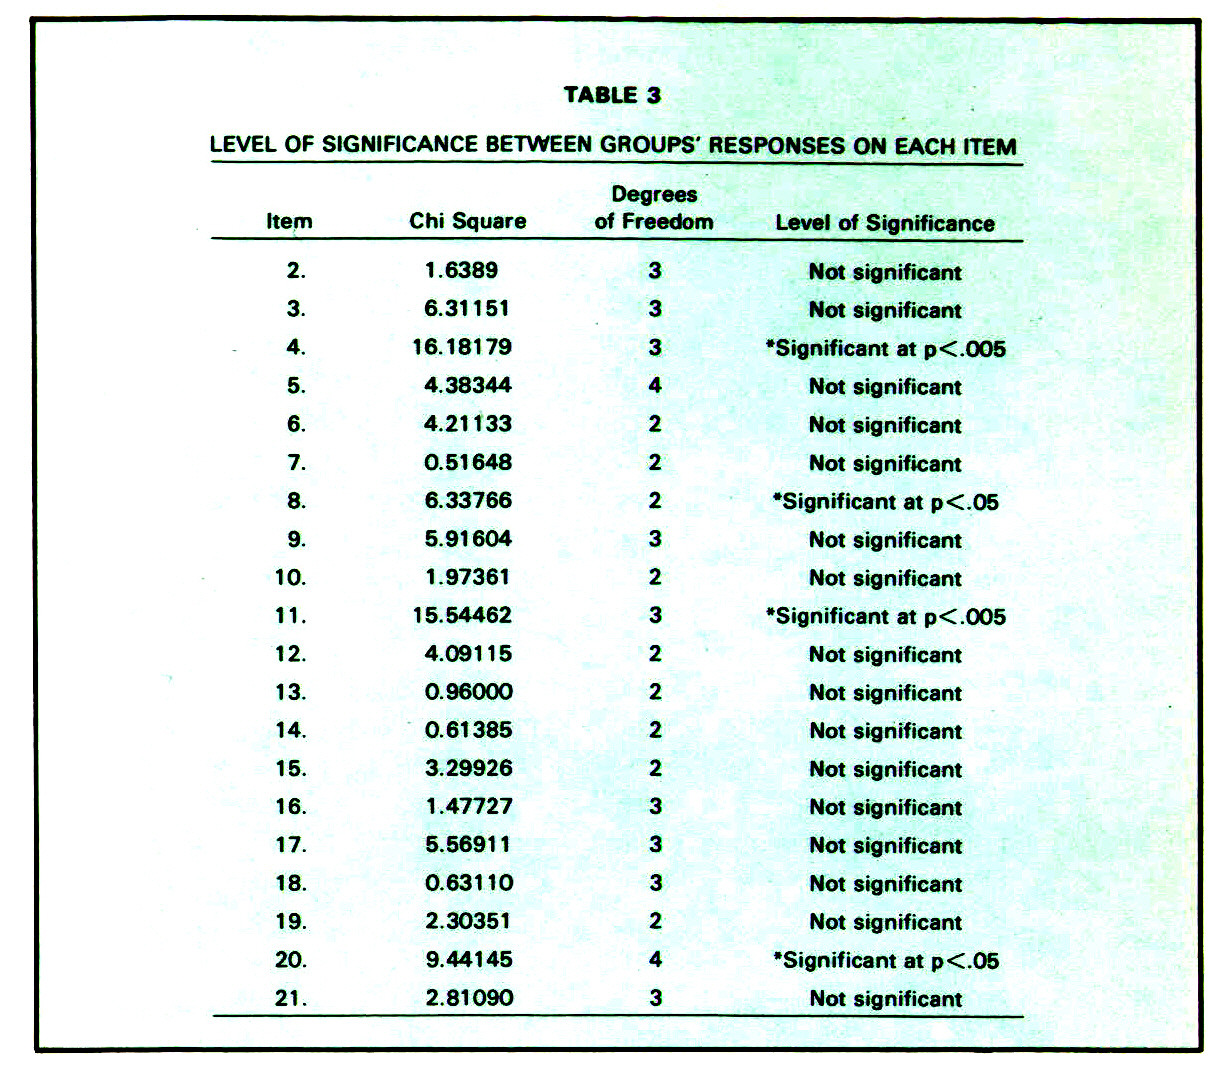 TABLE 3LEVEL OF SIGNIFICANCE BETWEEN GROUPS* RESPONSES ON EACH ITEM